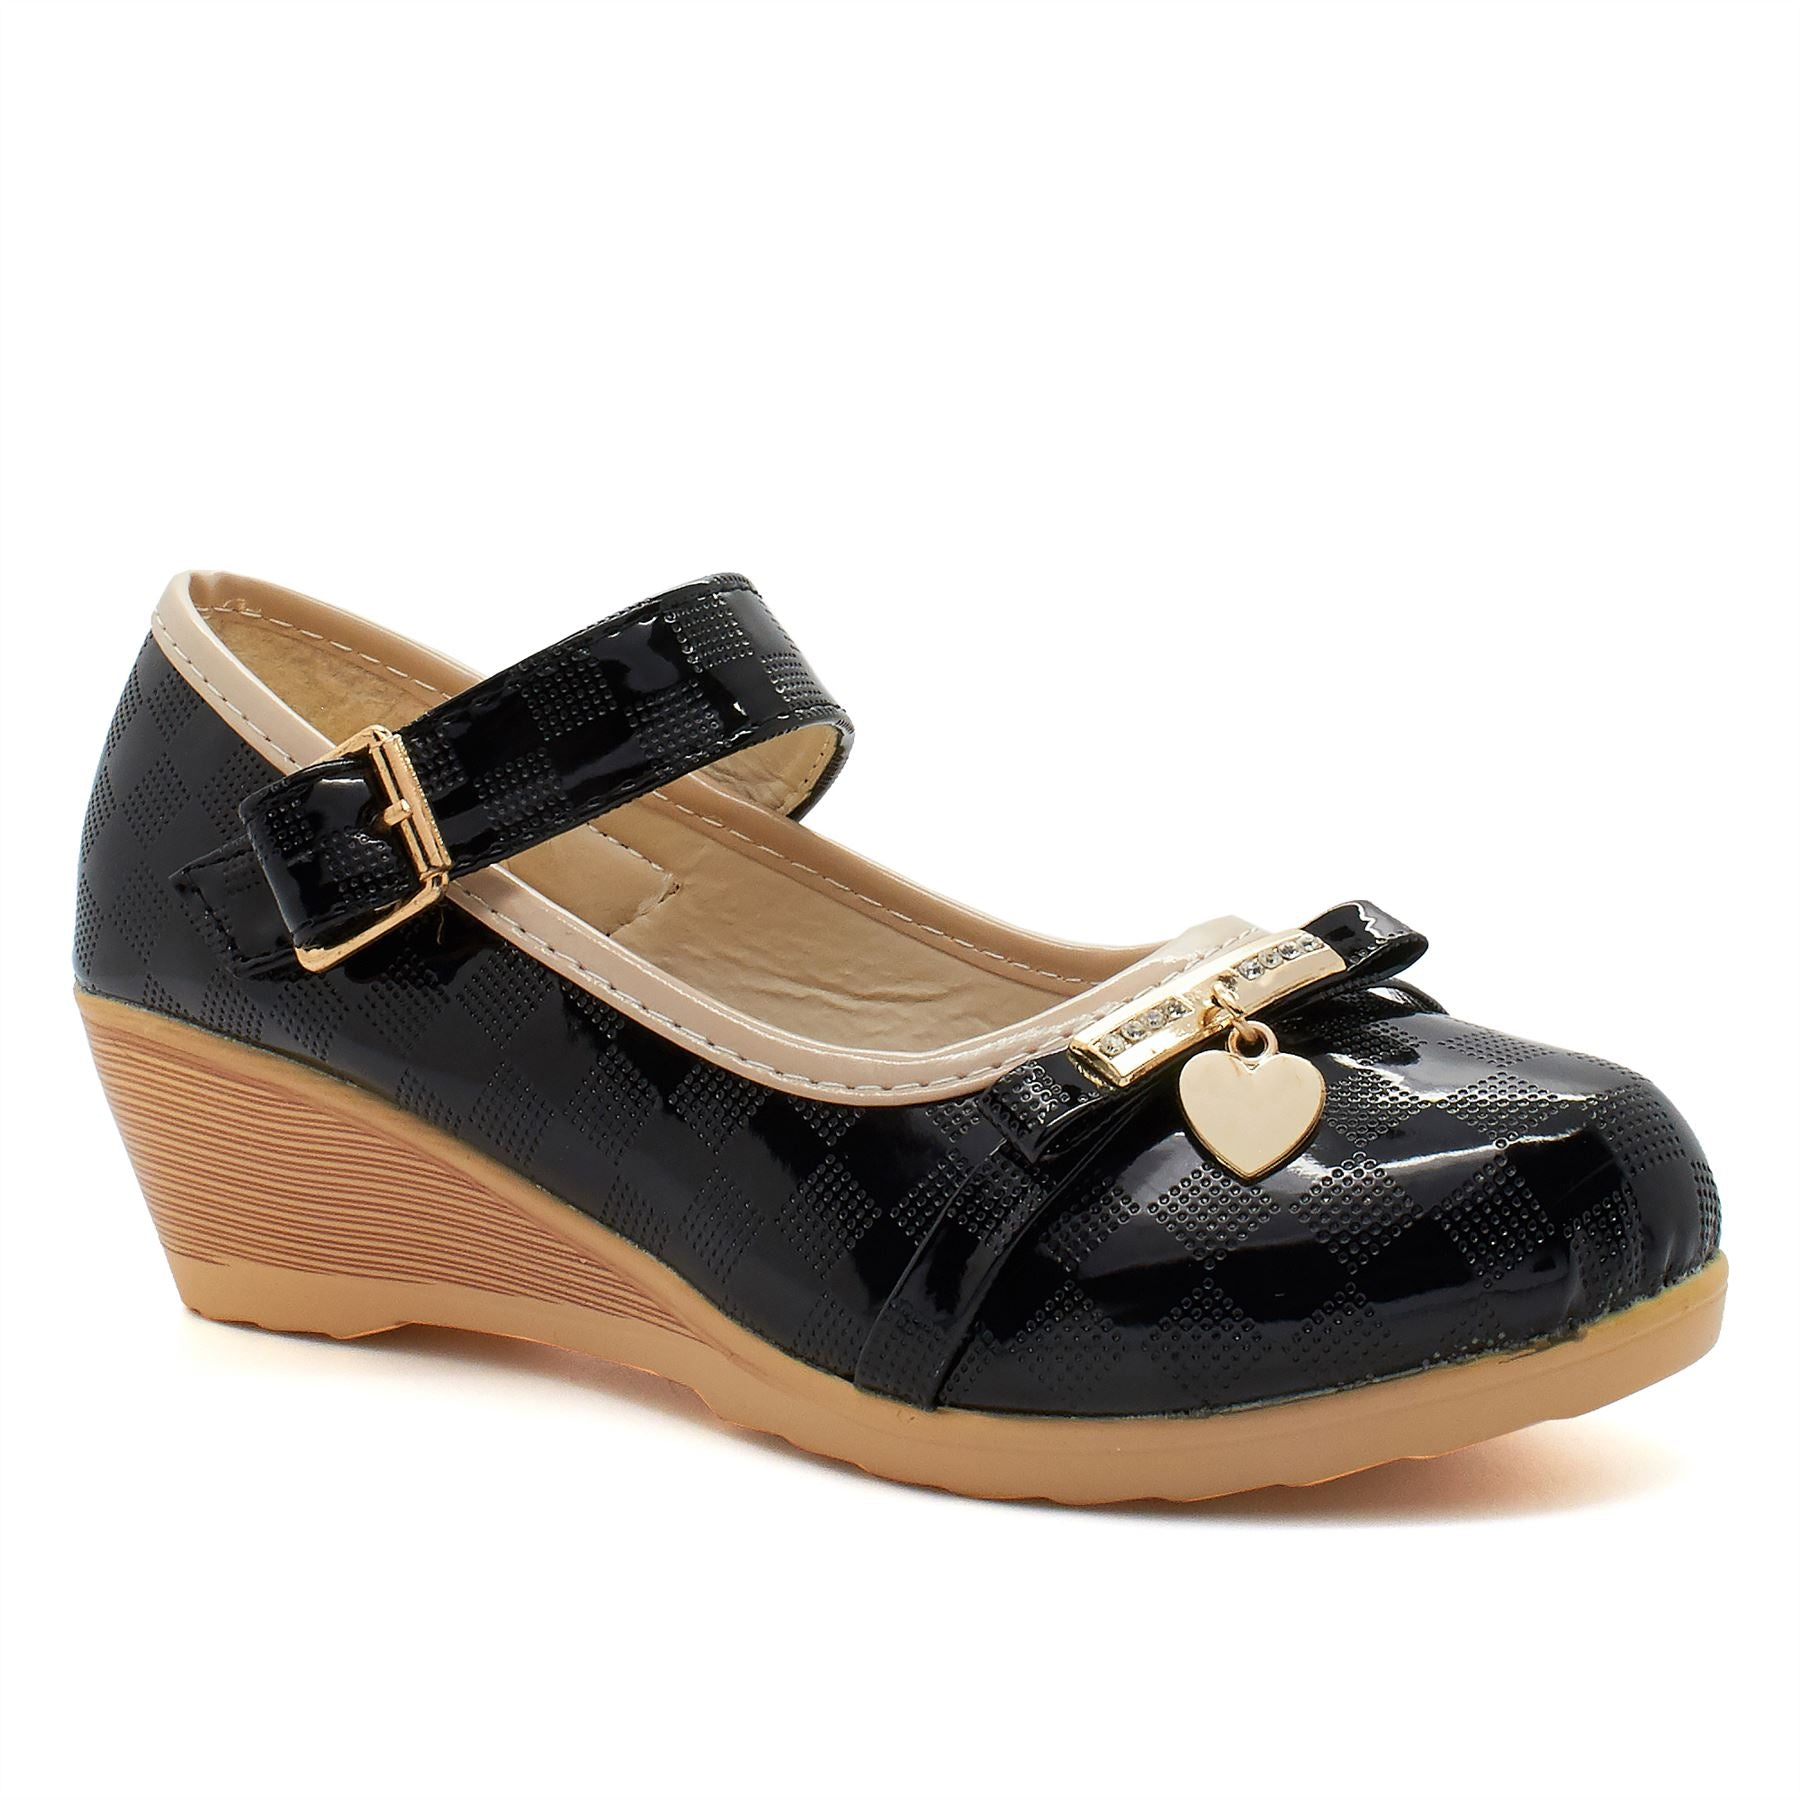 Black Patent Chequered Mary Janes